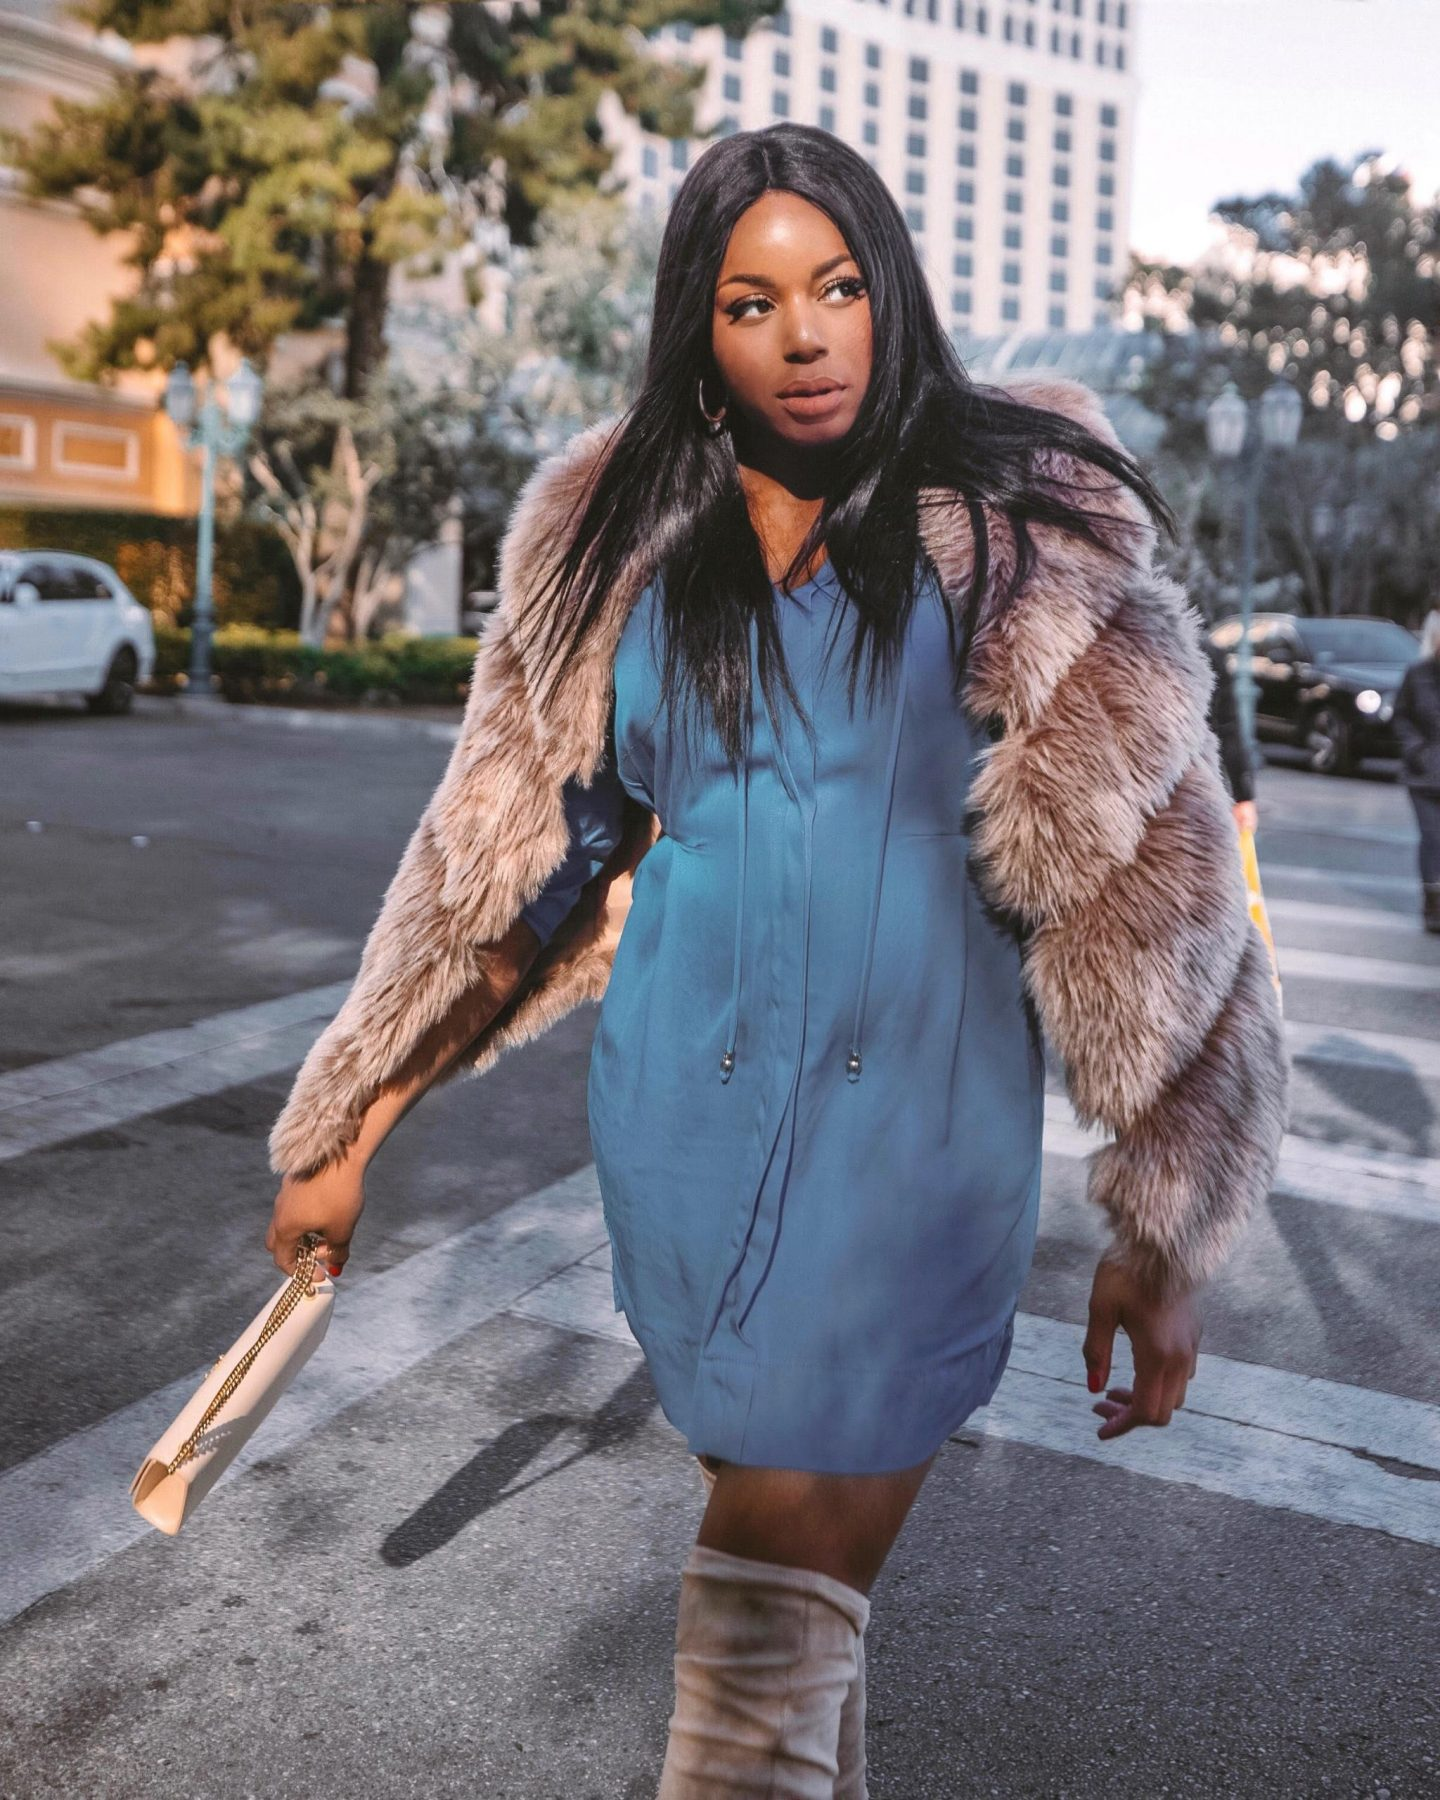 Fashion Influencer Kaye Bassey wearing a Faux Fur Vest + Blue DVF Dress in Vegas